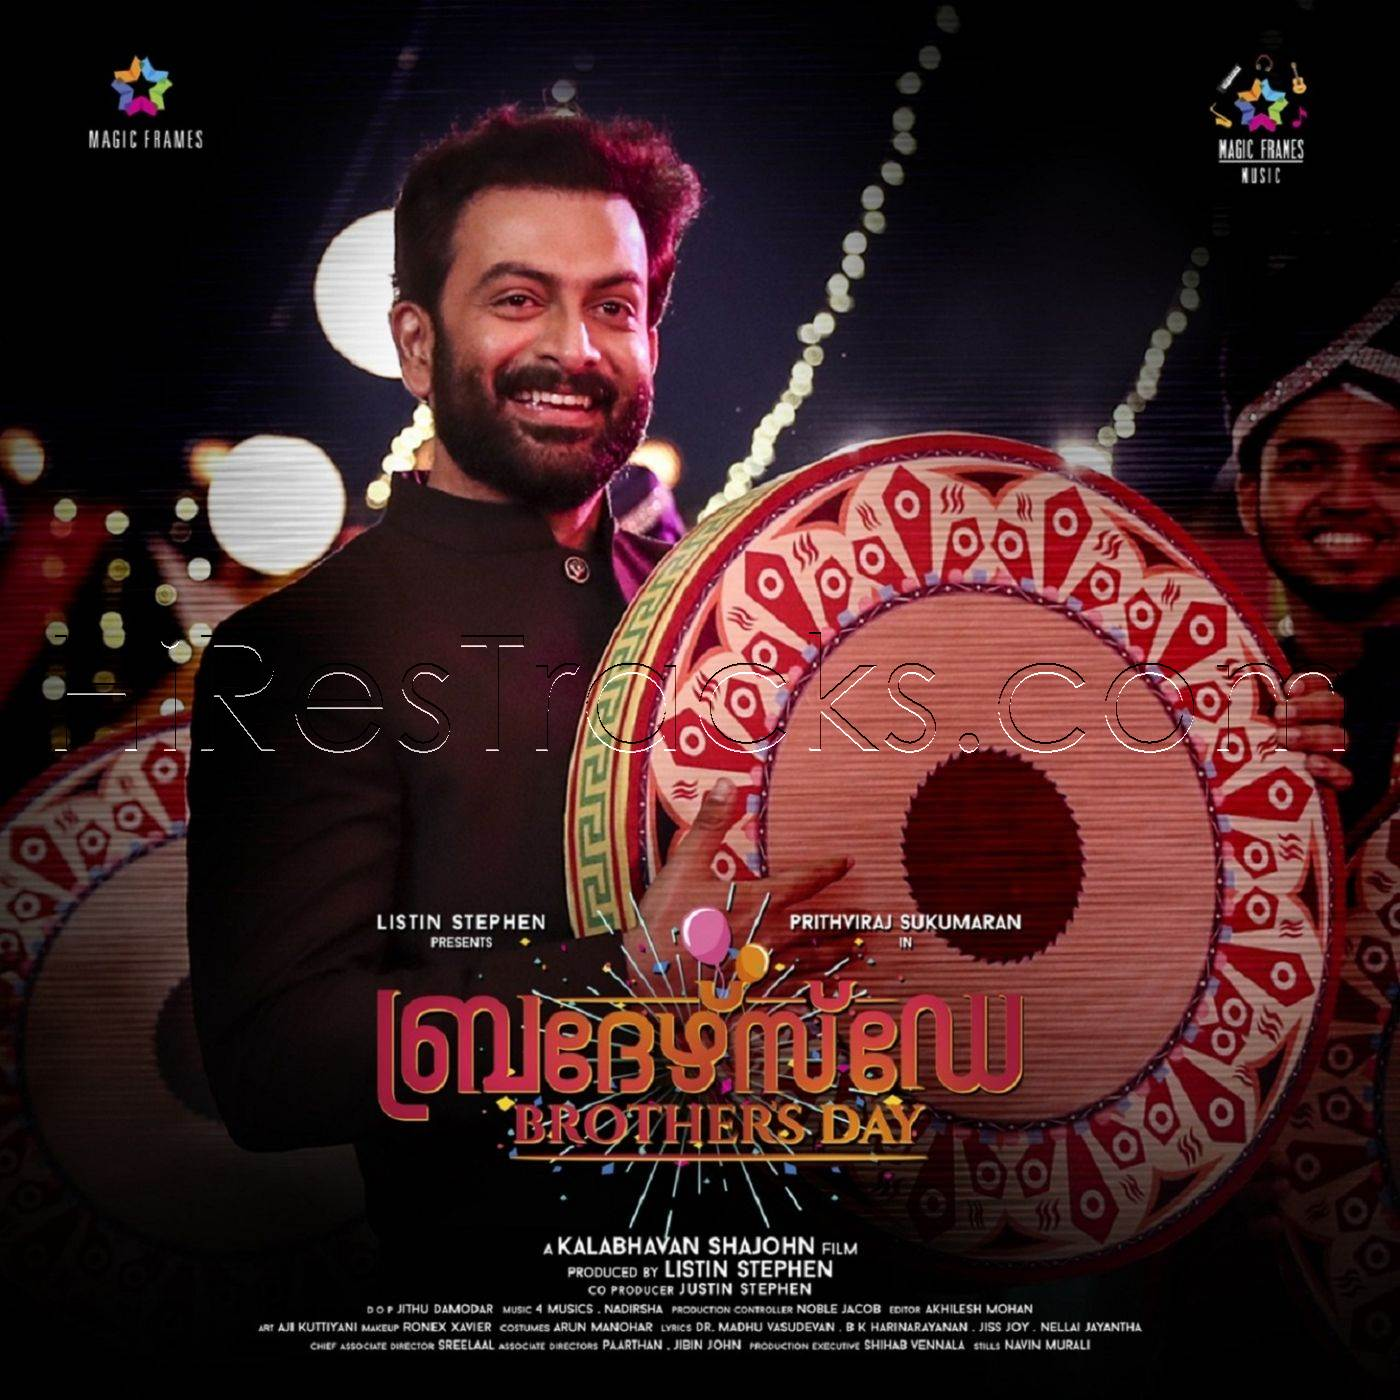 Brother's Day (2019) (Biby Mathew) (Magic Frames) [Digital-RIP-FLAC]